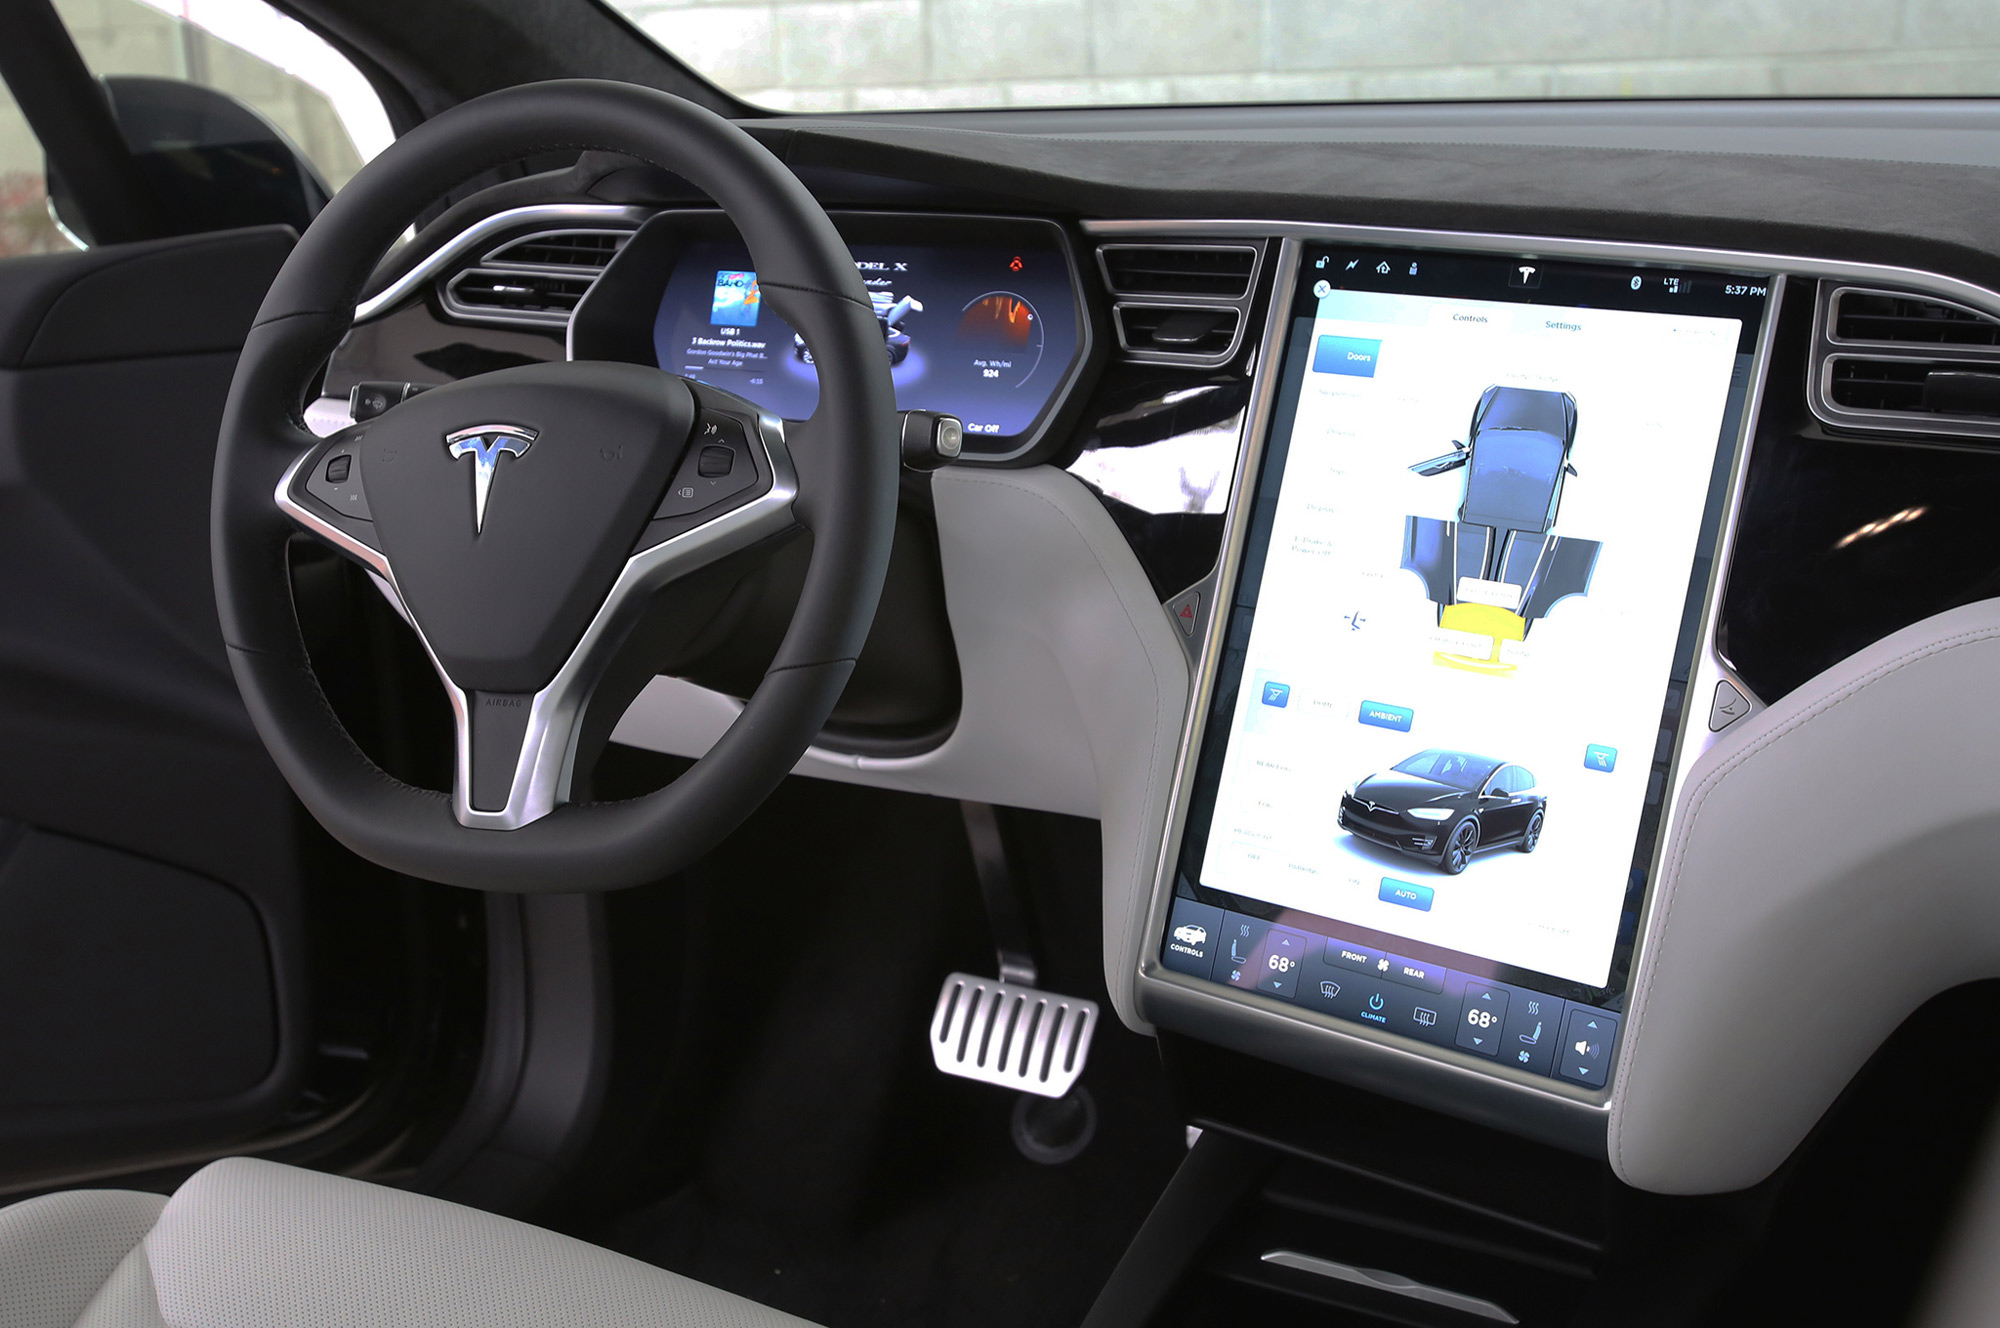 2017 Tesla X 75D ULL SELF DRIVING CAPABILITY and Cream ... |Self Driving Tesla Interior